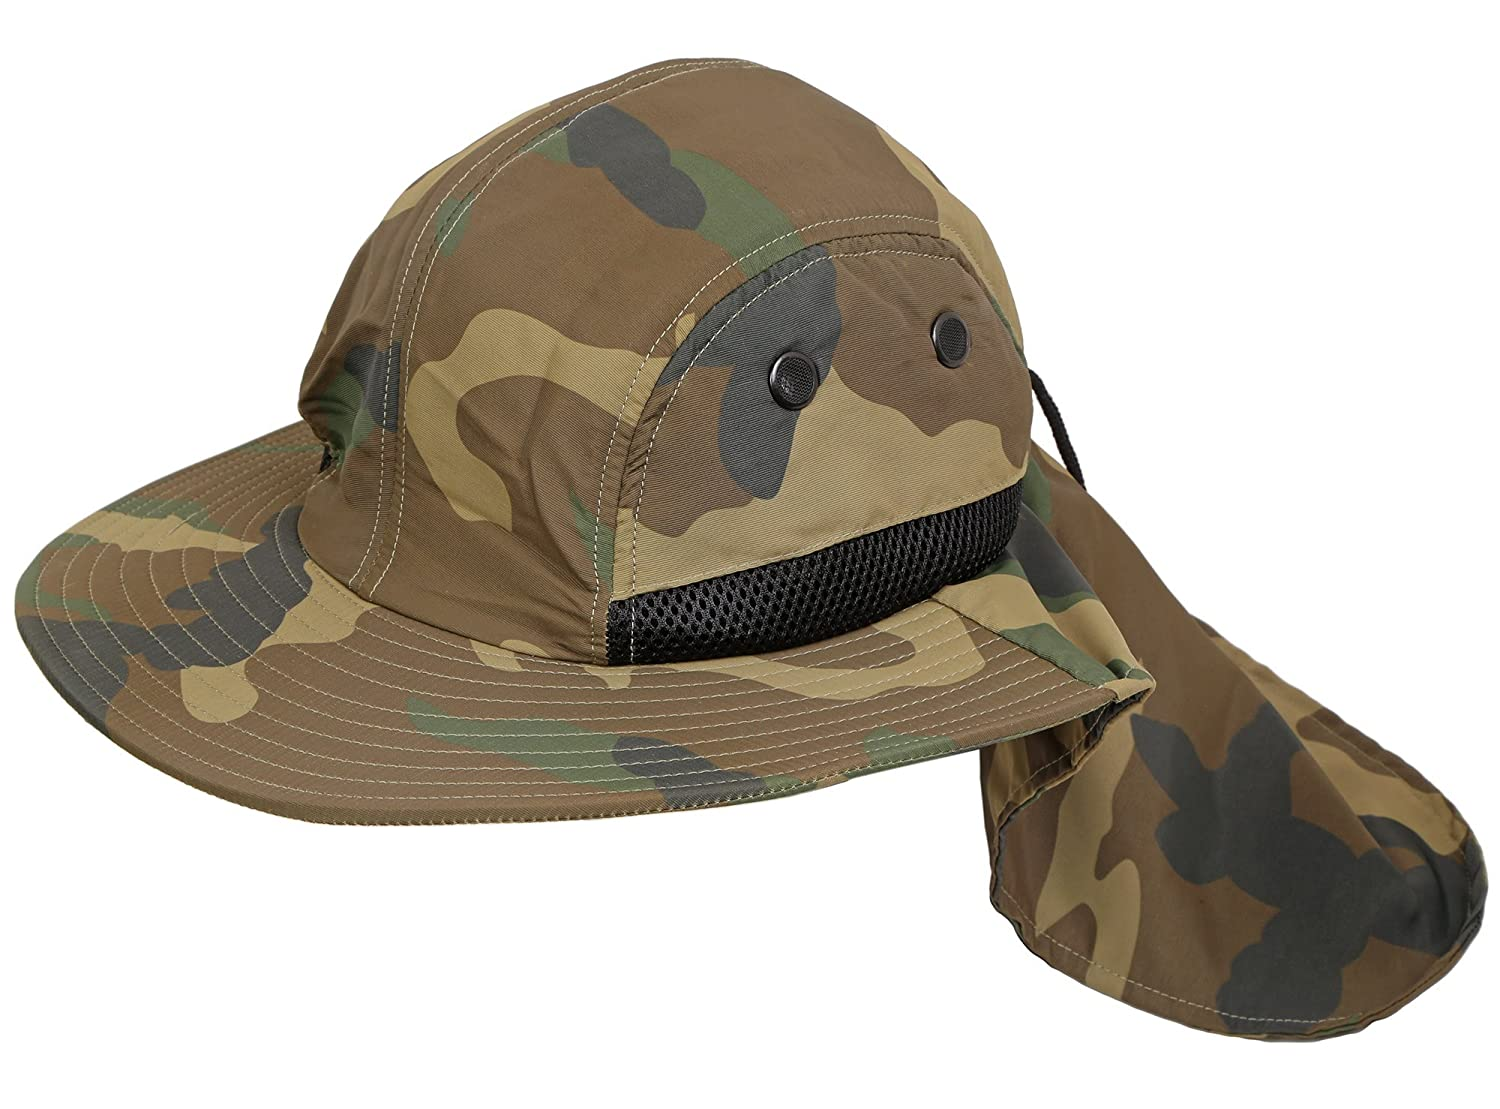 H-197-SM Camo Neck Protector Sun Hat - (SM) at Amazon Men s Clothing store  a3efc645350